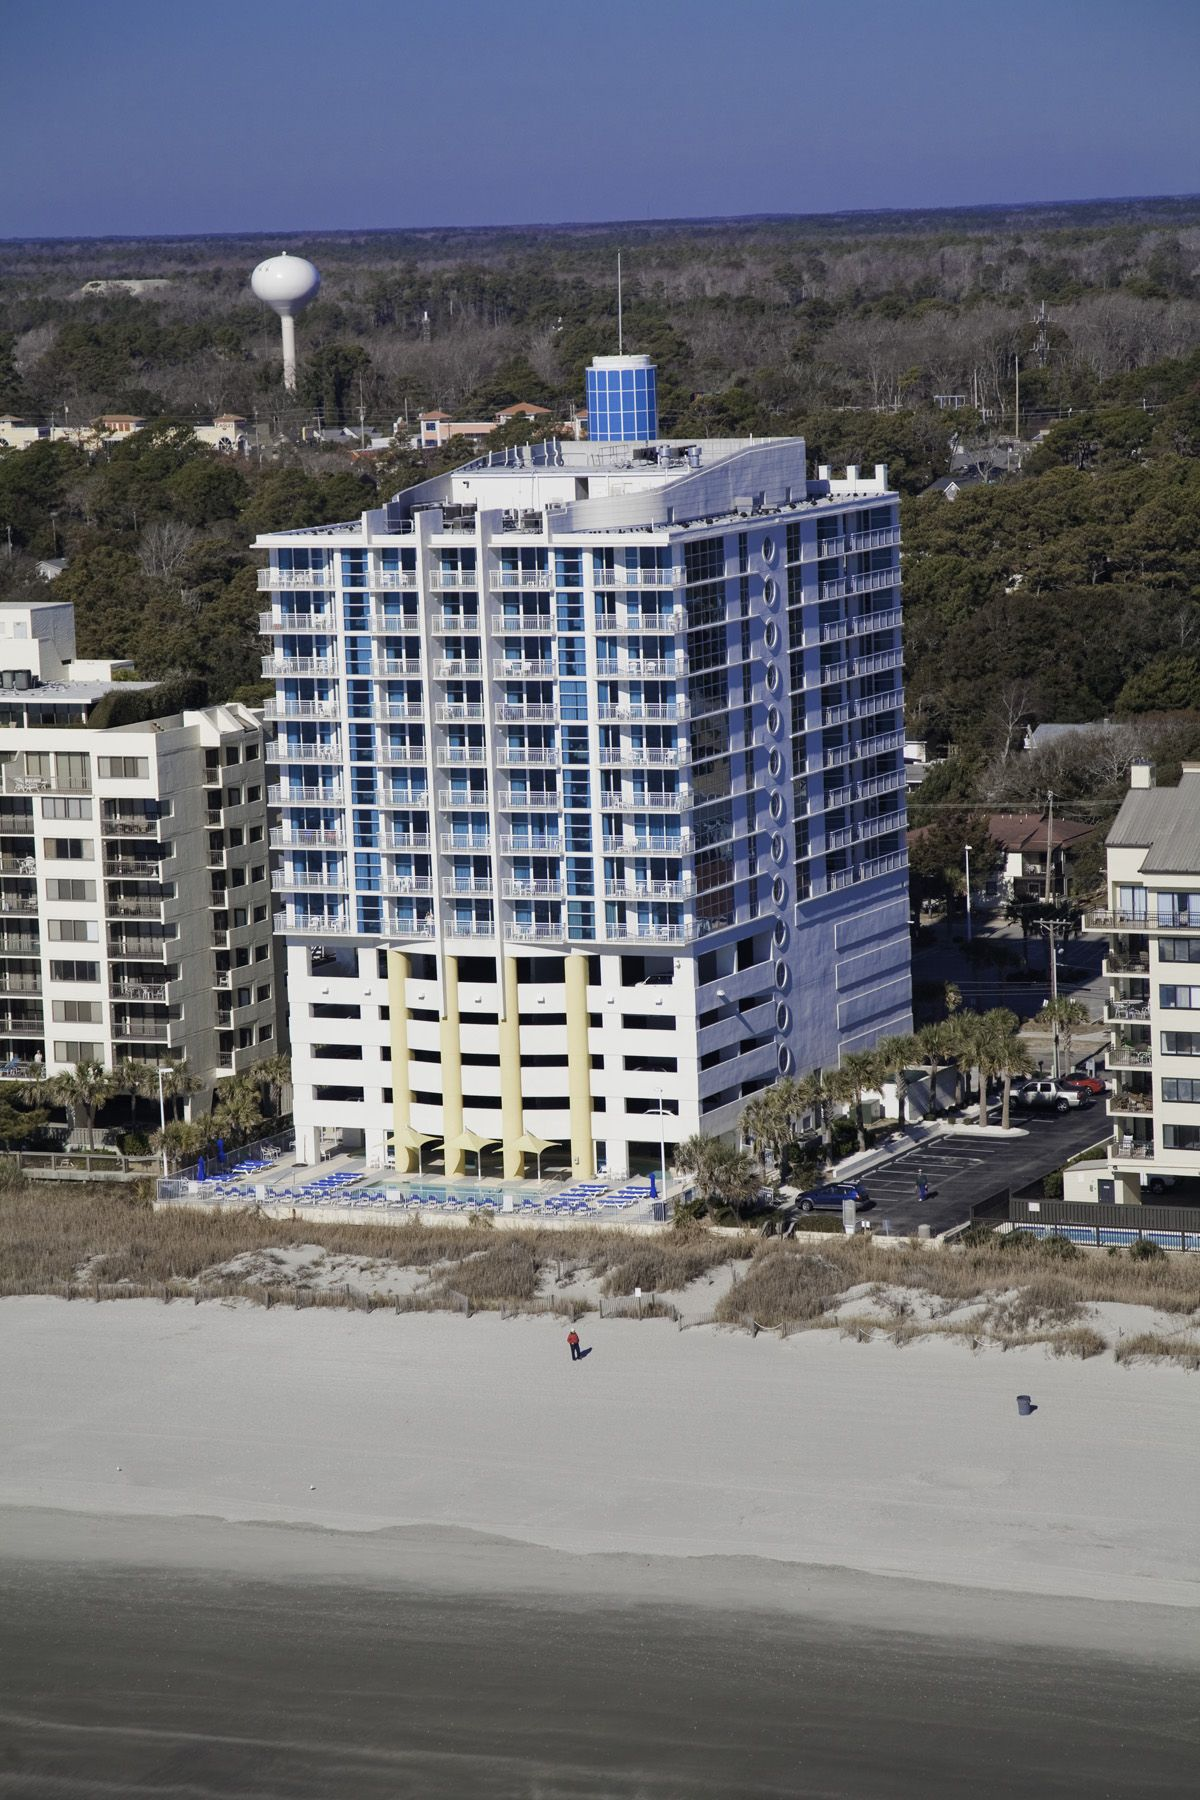 Our Beautiful North Myrtle Beach Oceanfront Hotel Is Located Only